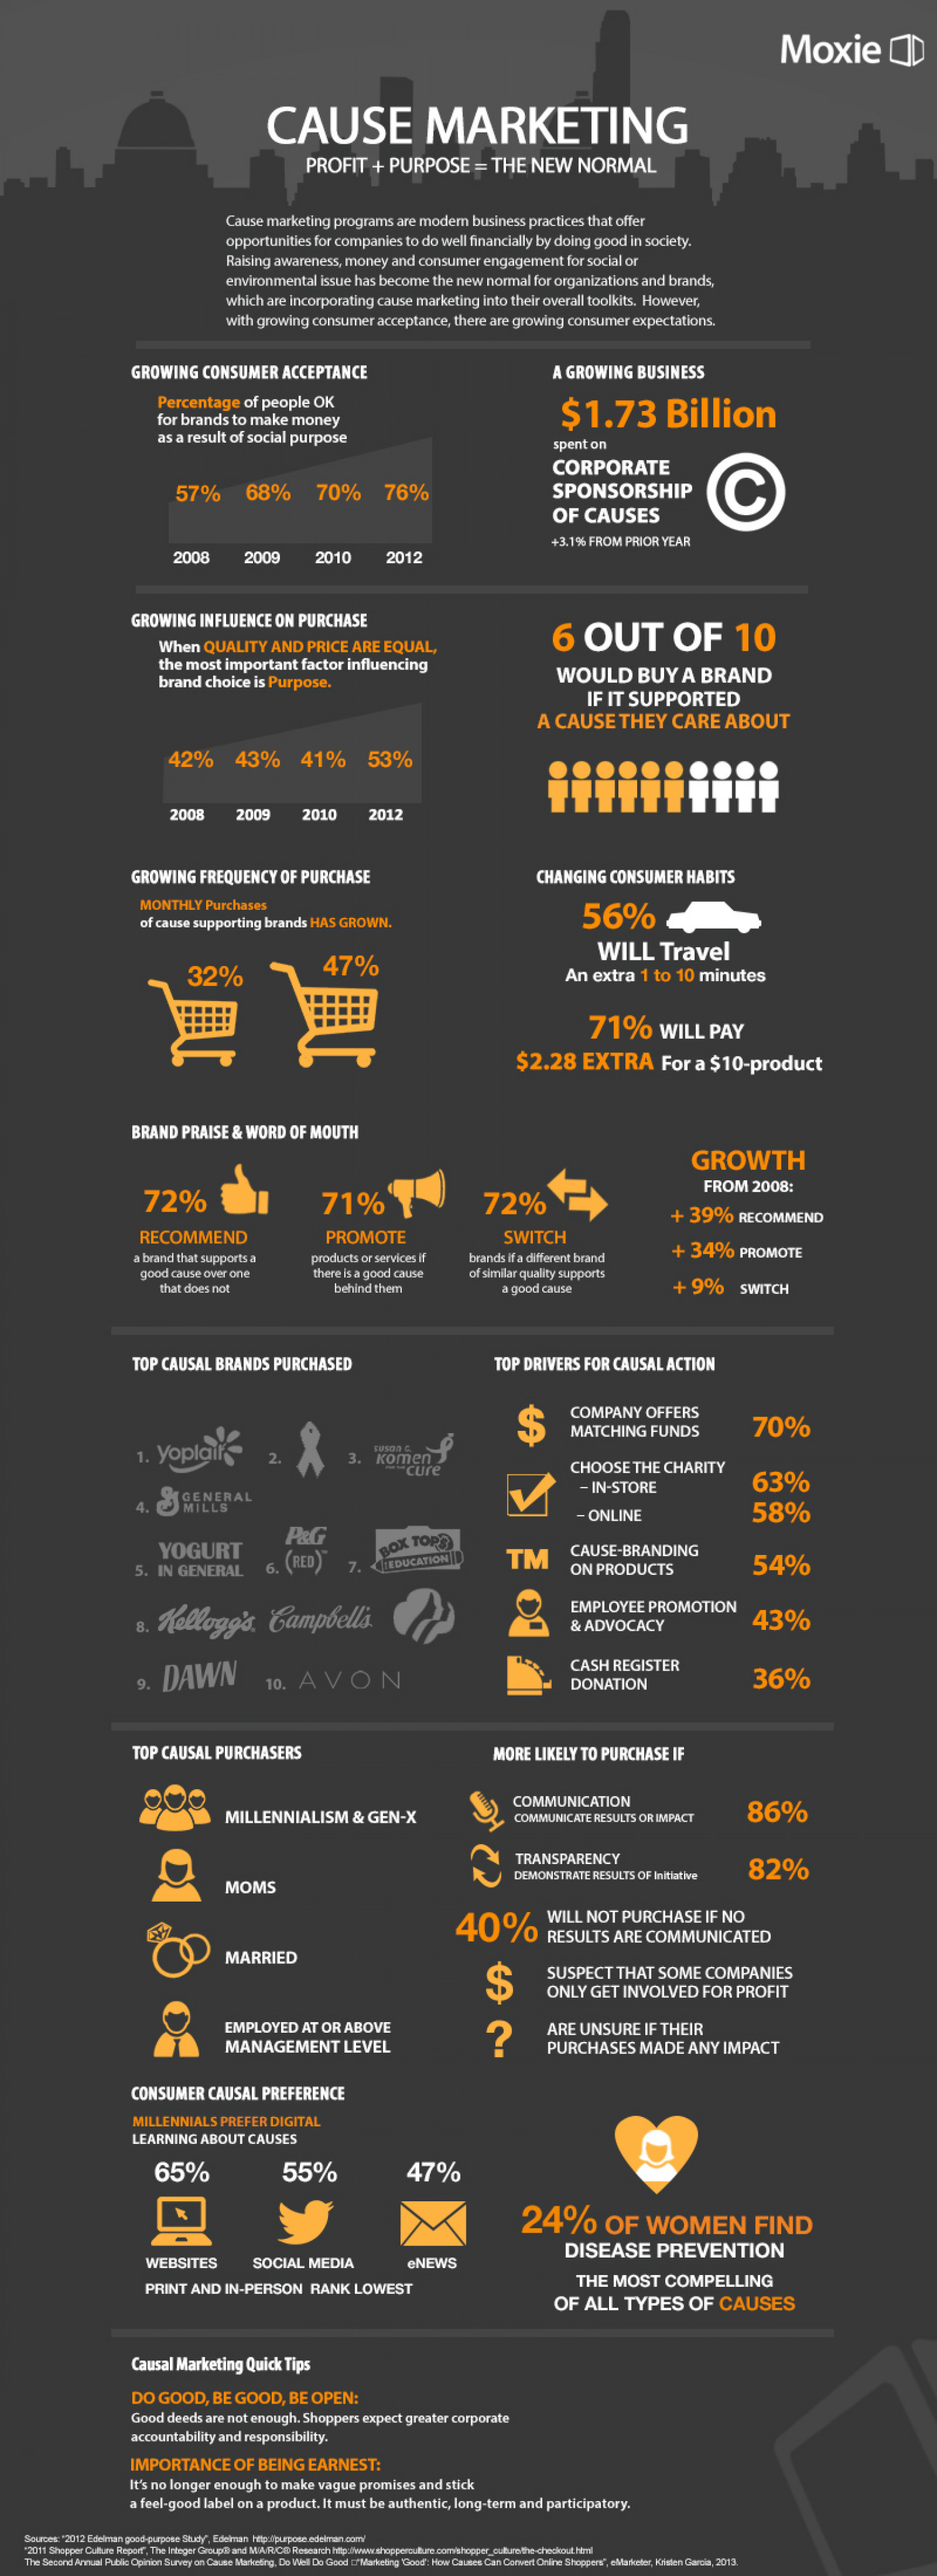 Cause Marketing: Profit + Purchase = The New Normal Infographic